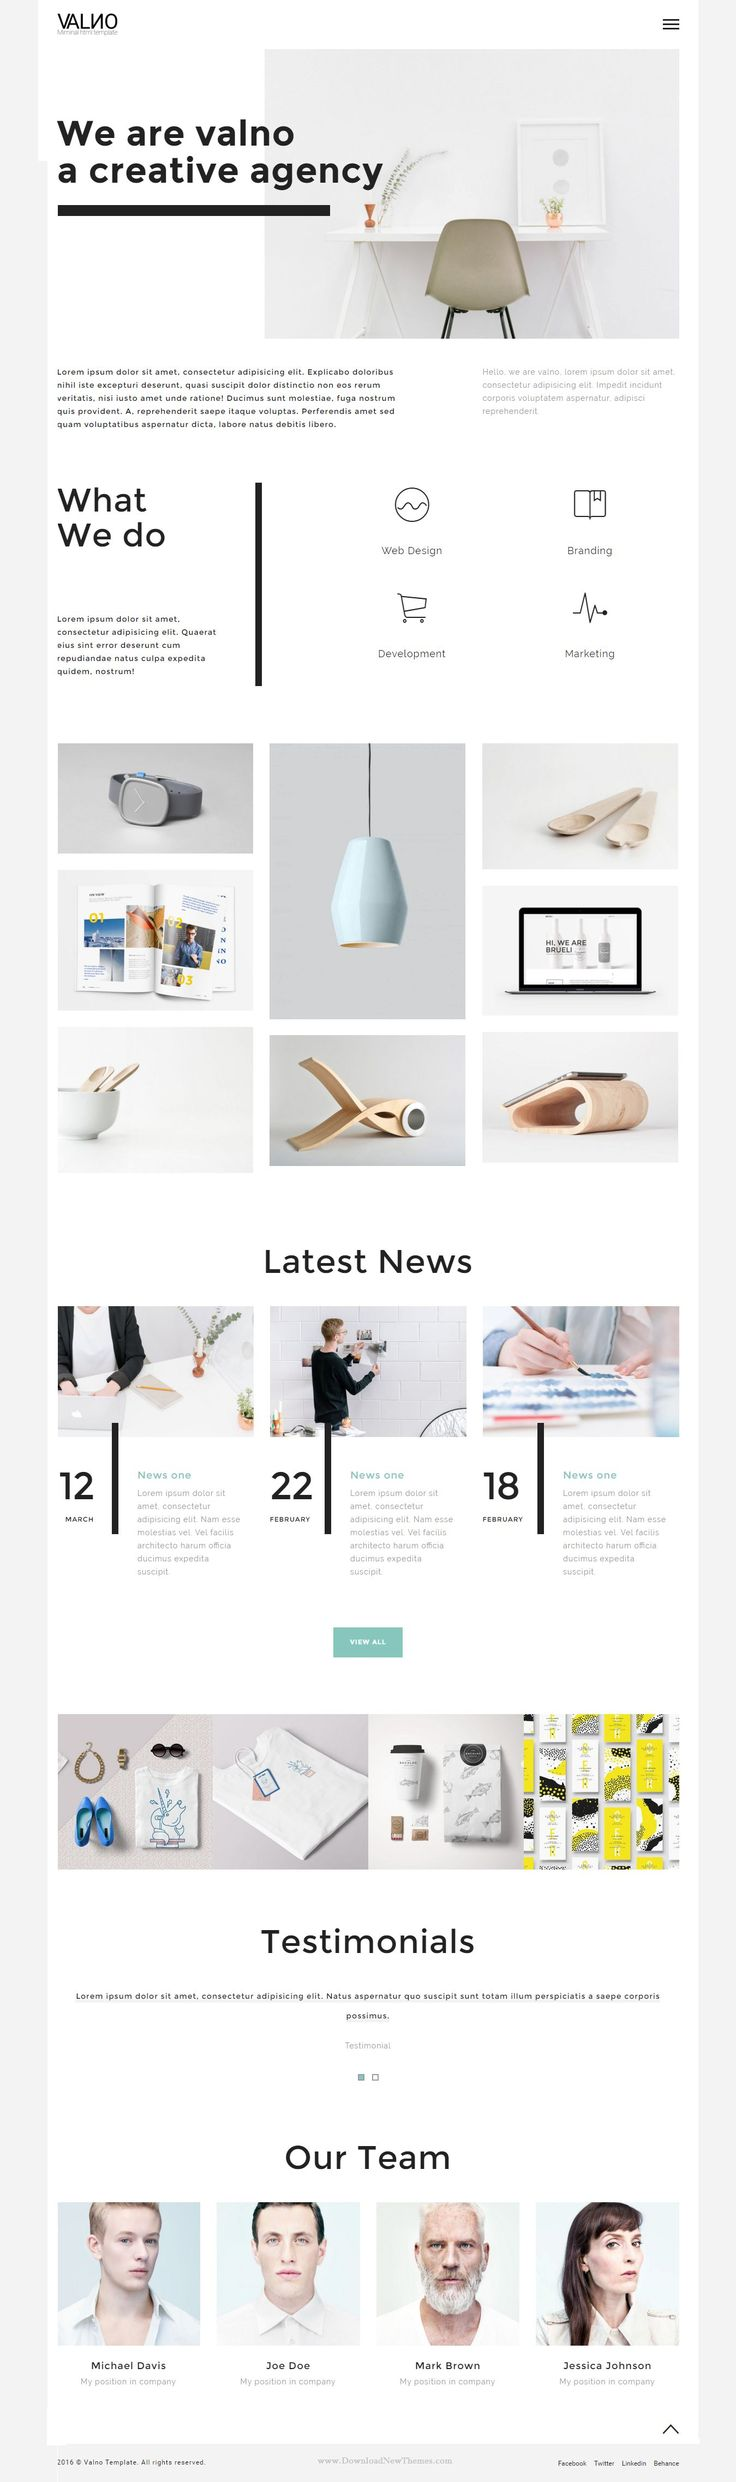 Valno is a fully responsive HTML5 & CSS3 Bootstrap template designed with a #minimal and clean design. This template is perfect for building an awesome #website for Portfolio, Agency, Photography and #Blog. It comes with 29 html ready for use and well commented. Download Now➝ http://themeforest.net/item/valno-minimal-creative-multi-page-portfolio-template/15377226?ref=Datasata